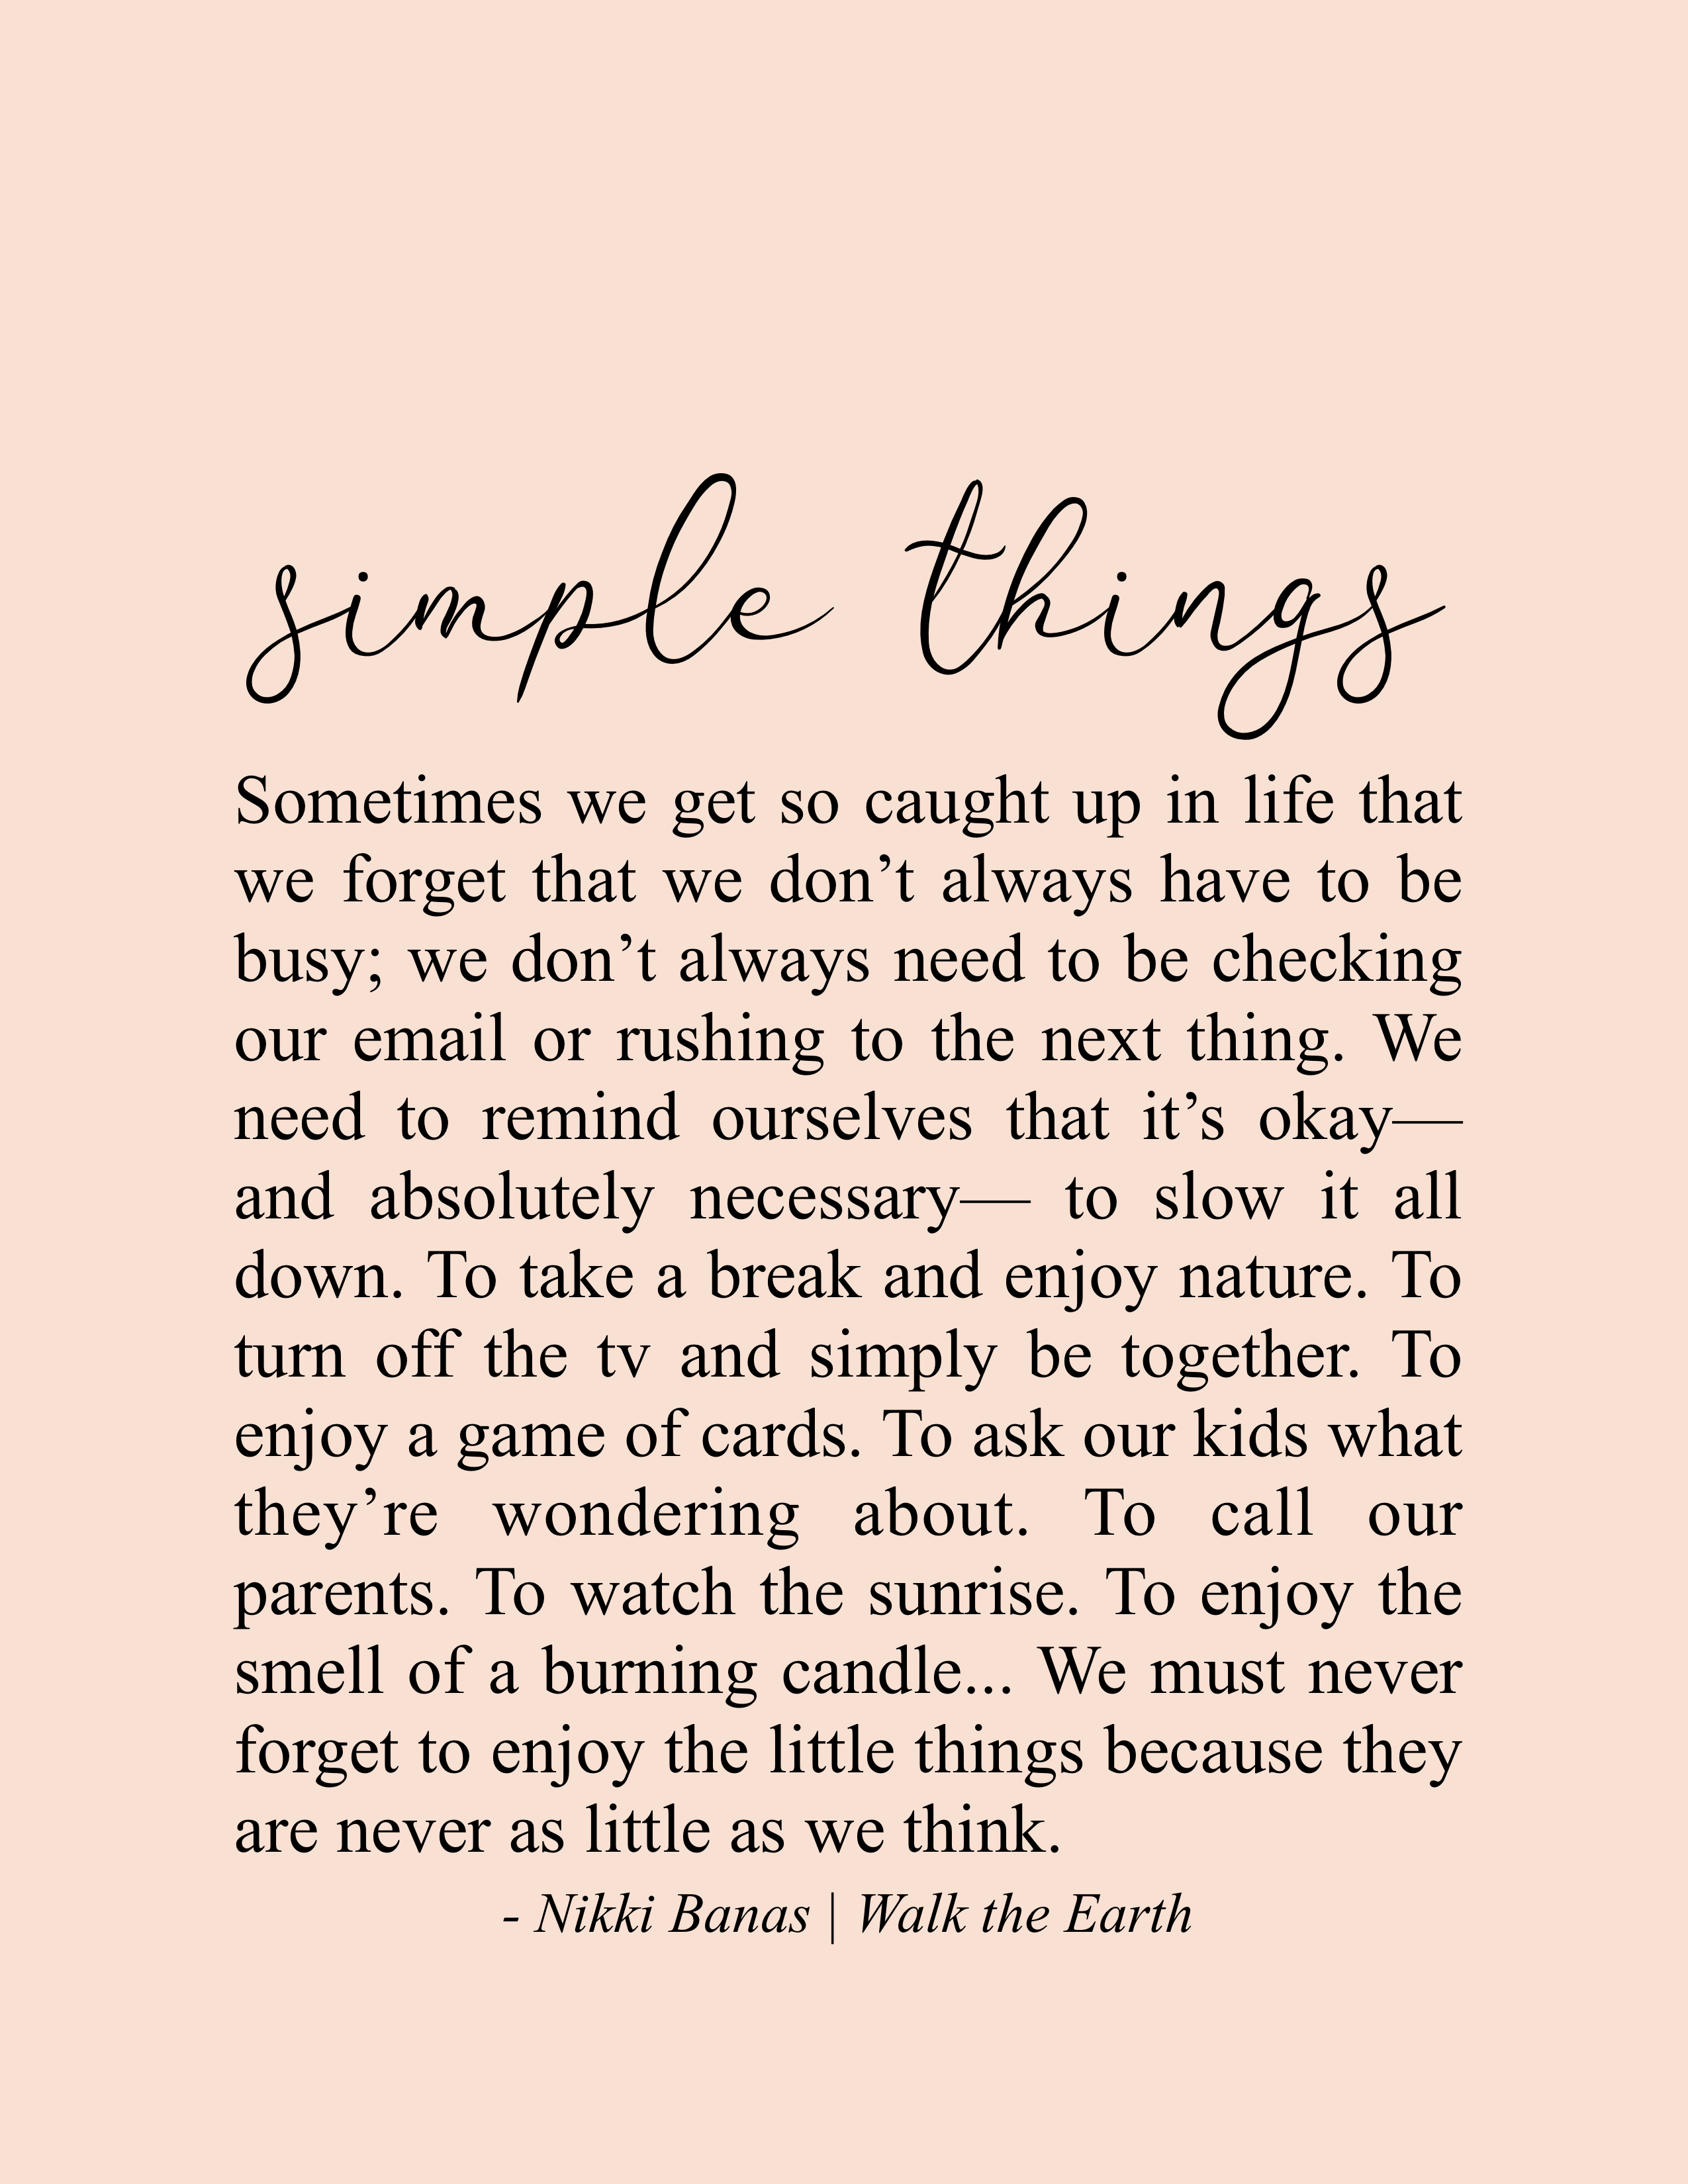 Simple Things Quotes Inspirational Self Love Love Yourself Nikki Banas Walk The Earth Poetry Encouragement Quotes Simple Quotes Words Quotes